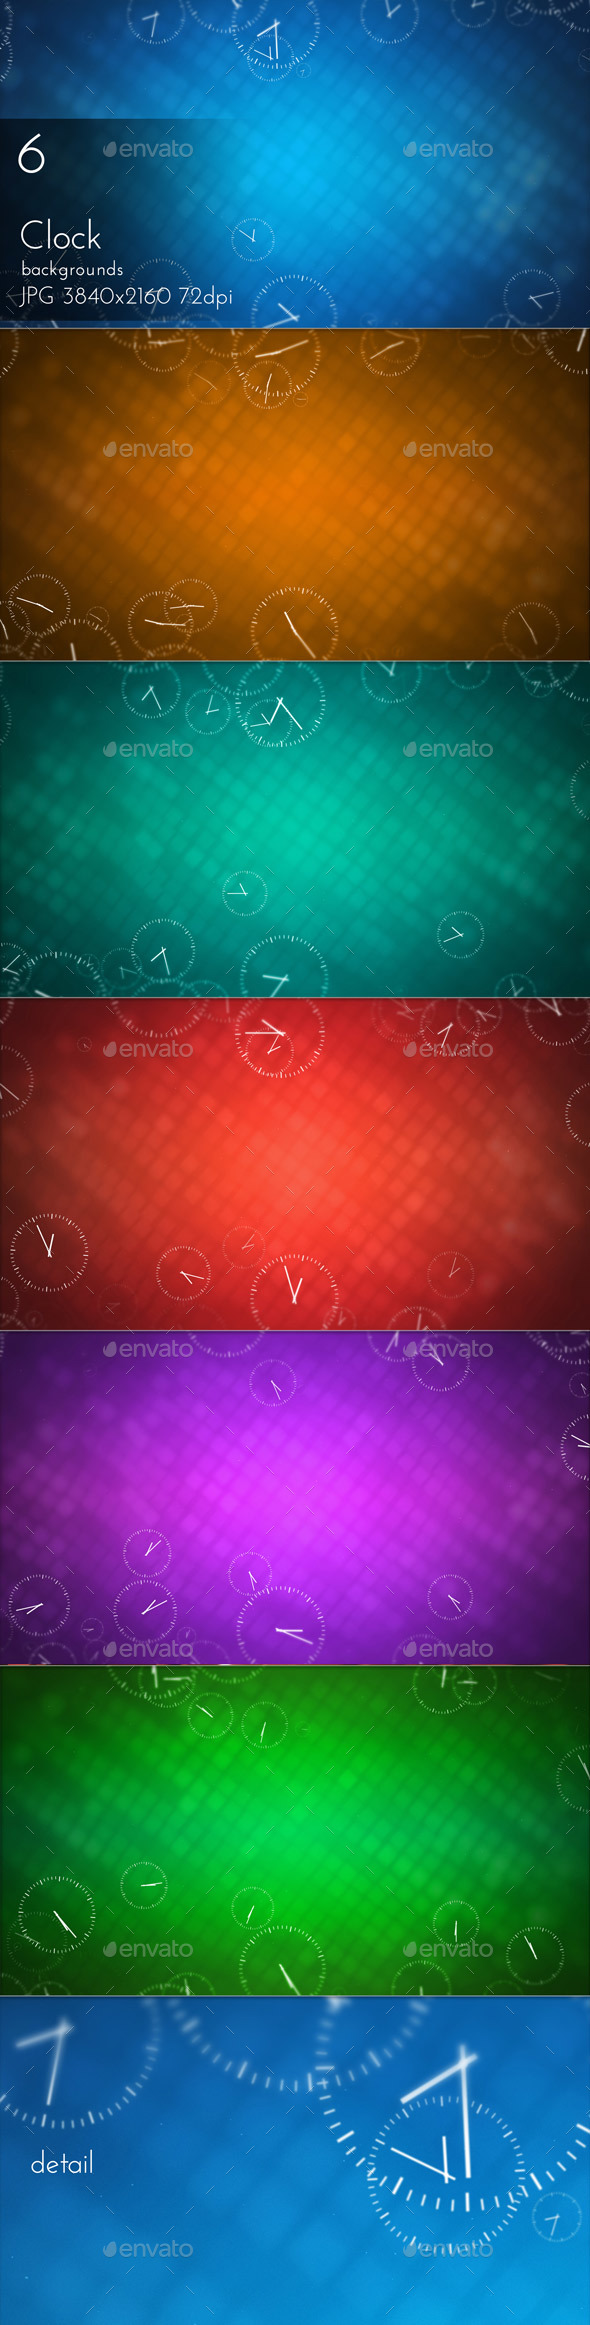 Clocks Background - Miscellaneous Backgrounds